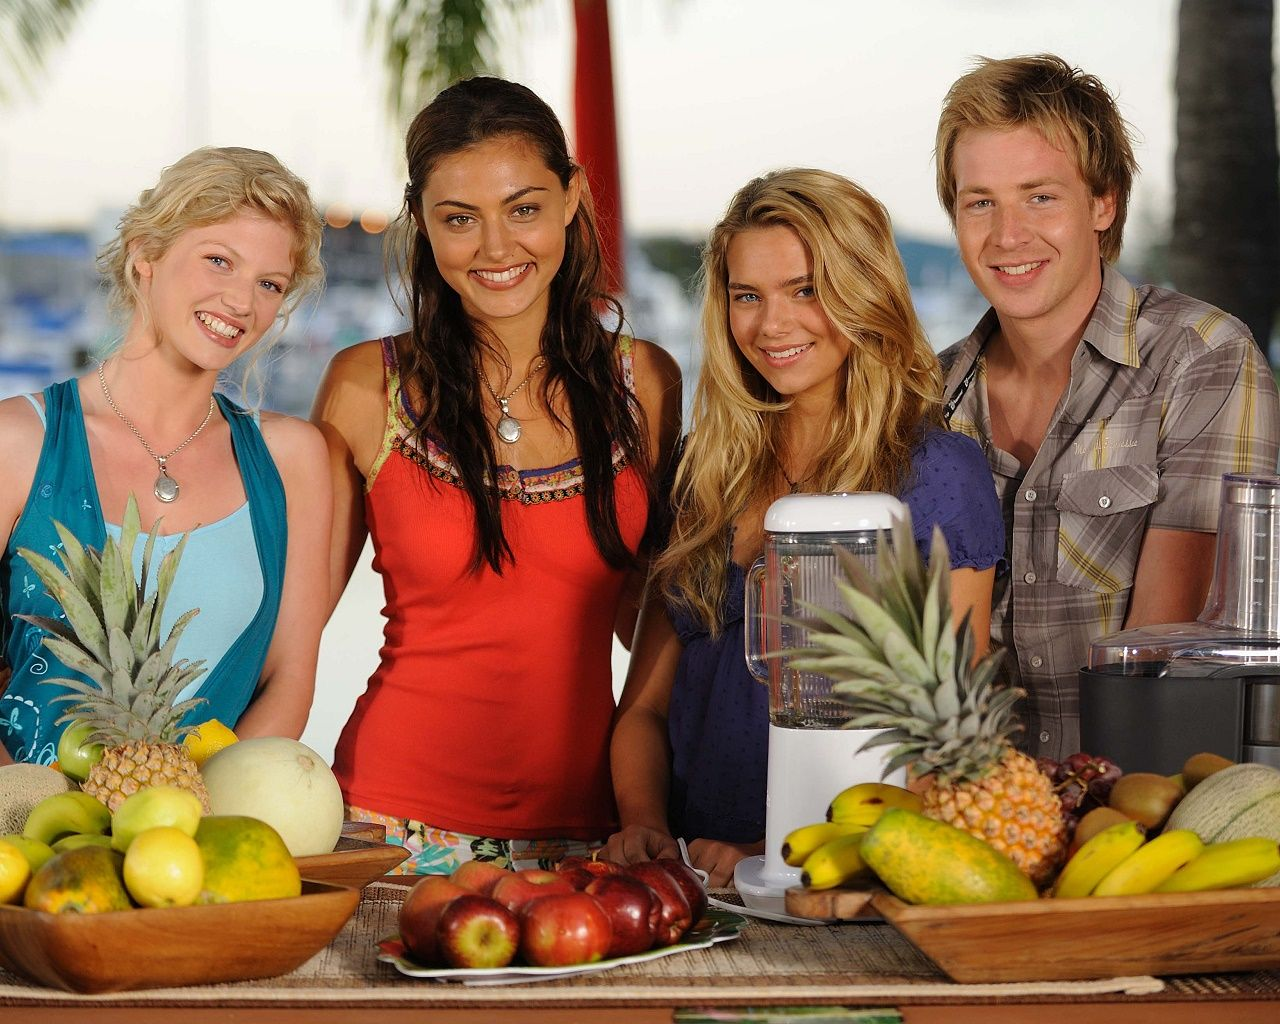 Cariba heine phoebe tonkin indiana evans angus mclaren for Just add water cast